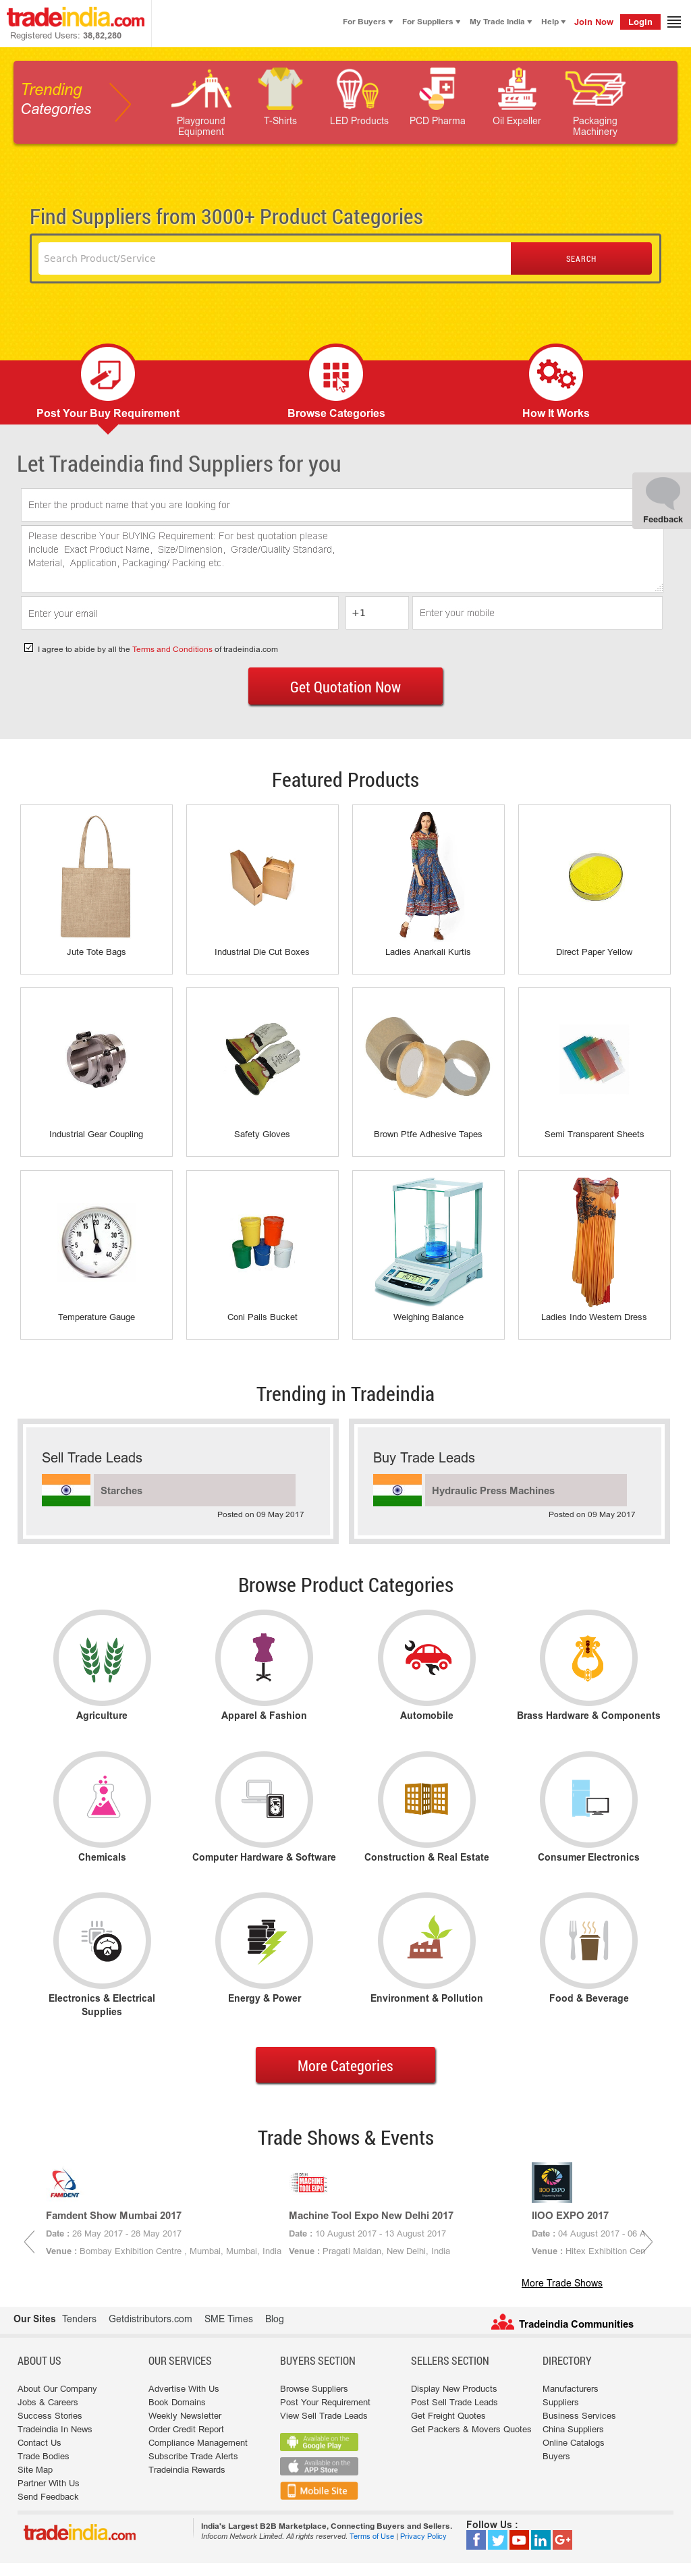 Tradeindia Competitors, Revenue and Employees - Owler